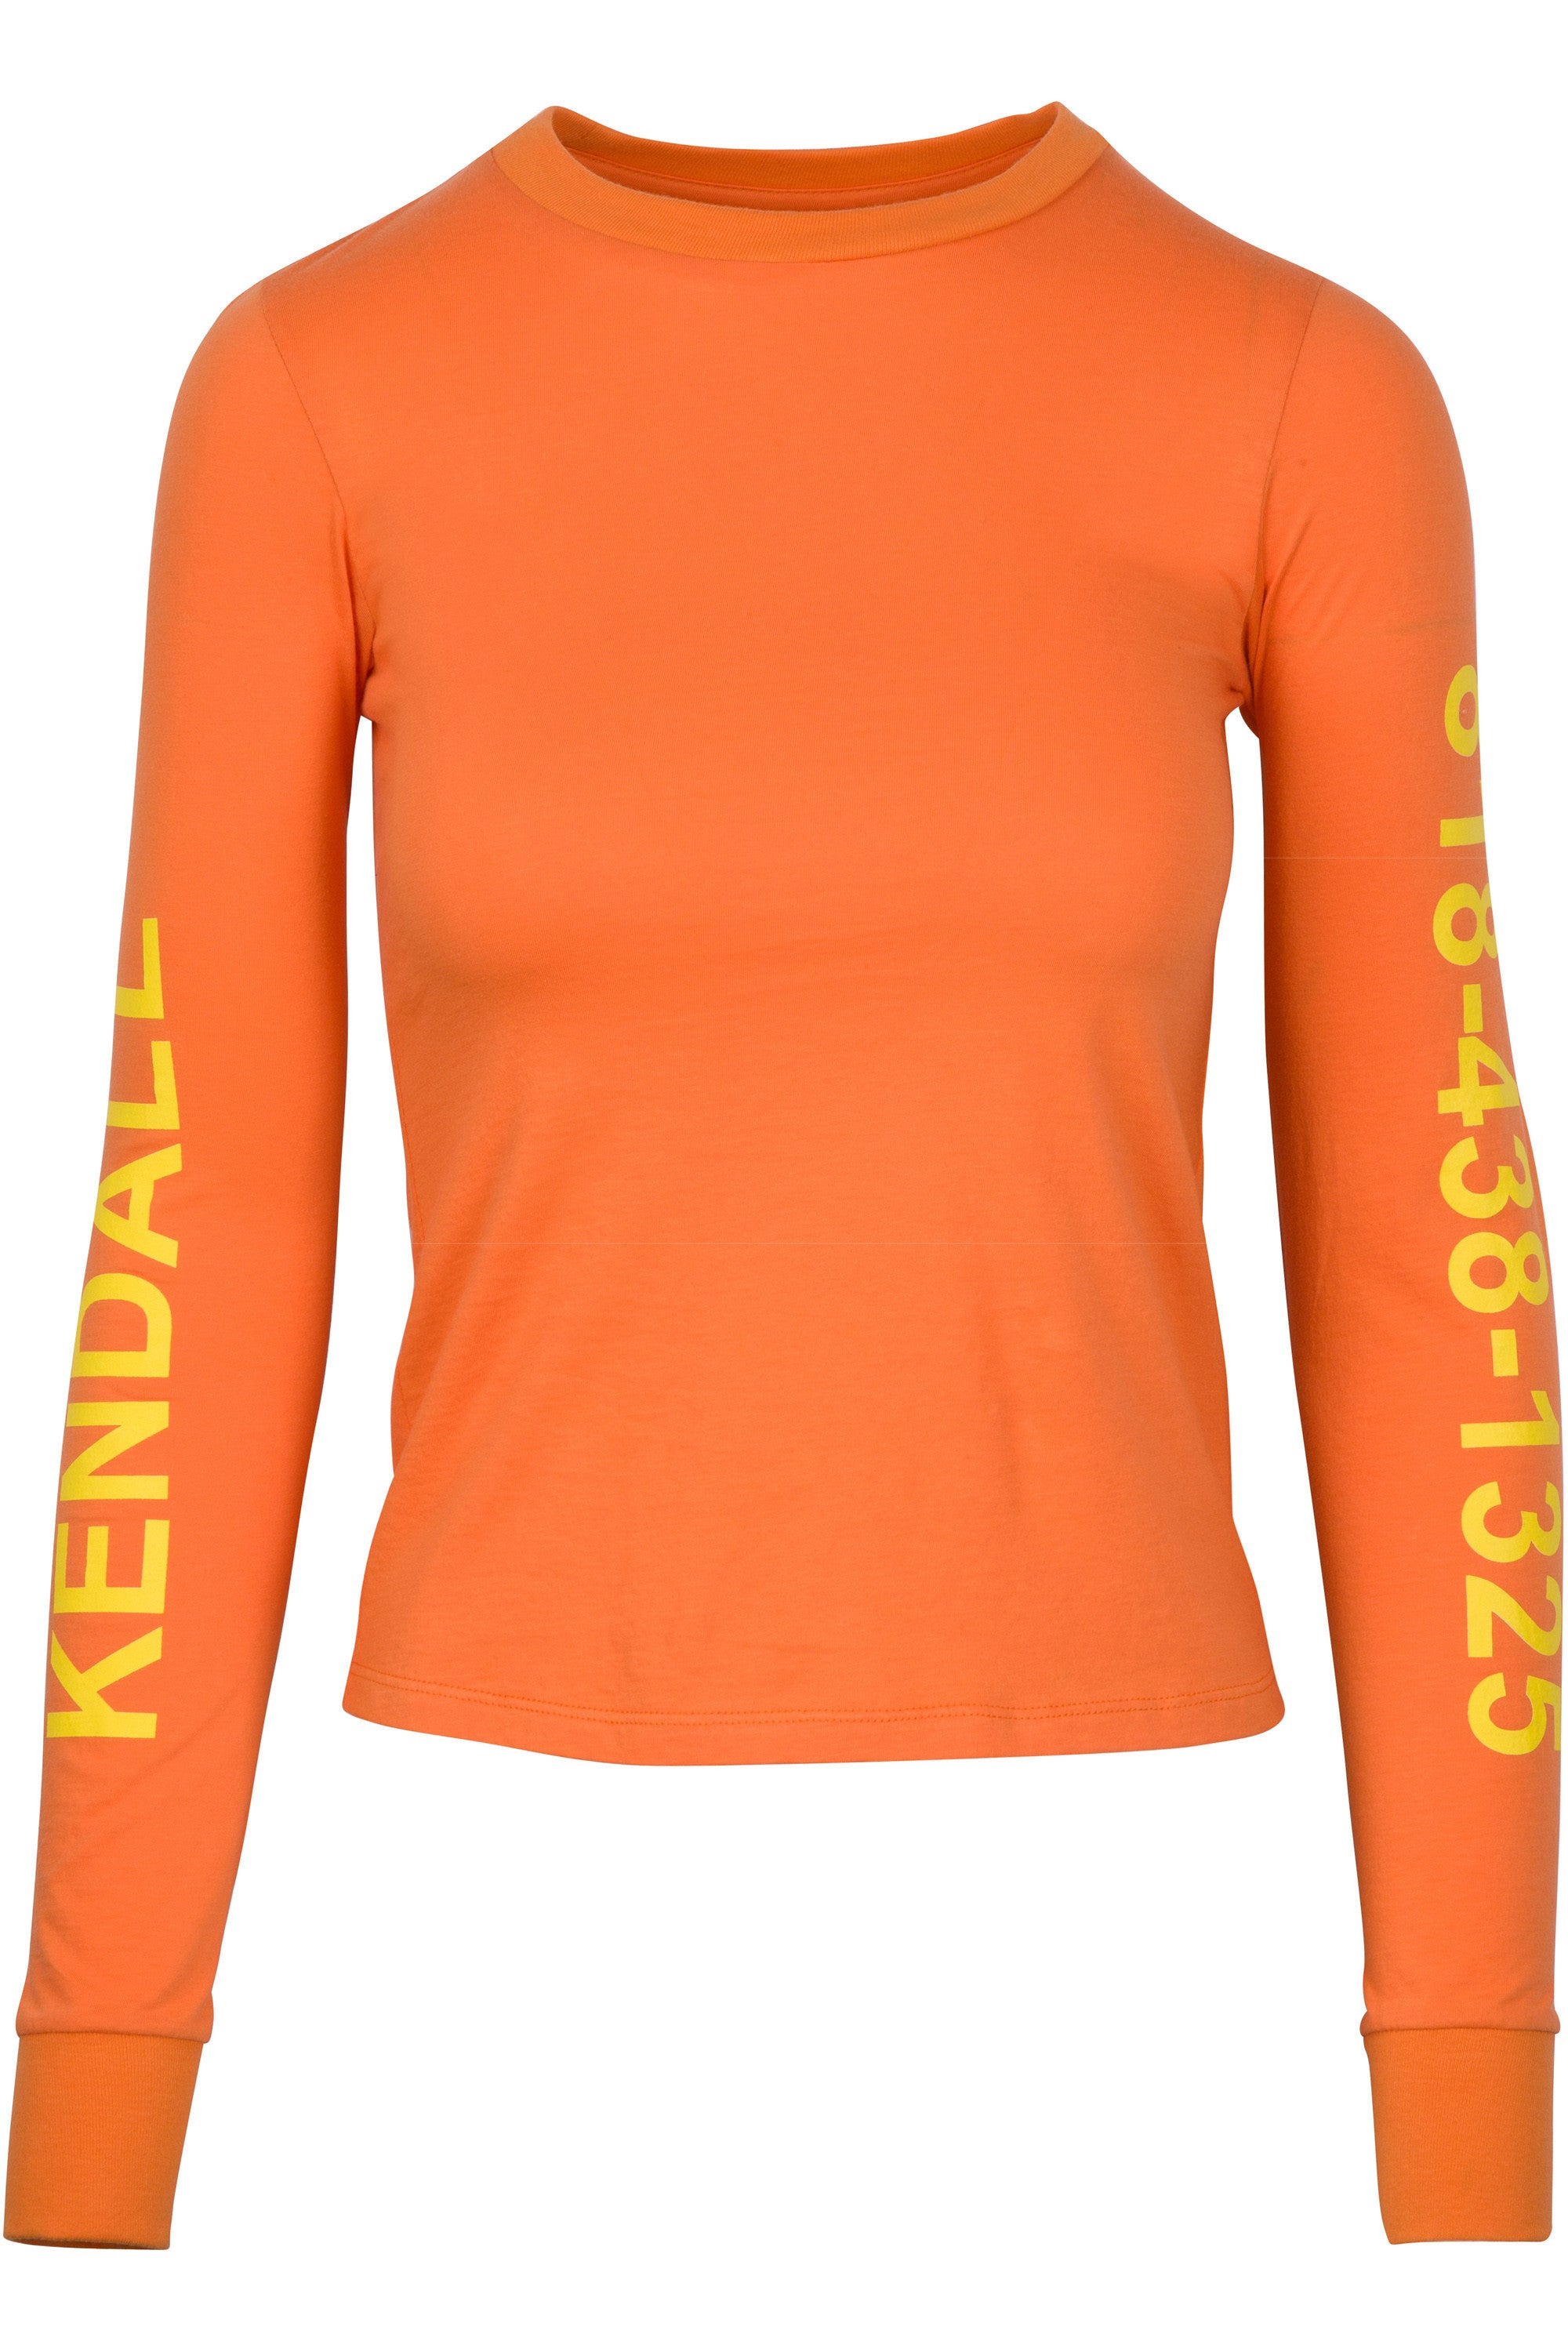 CALL ME KENDALL LONG SLEEVE TEE by Kendall and Kylie